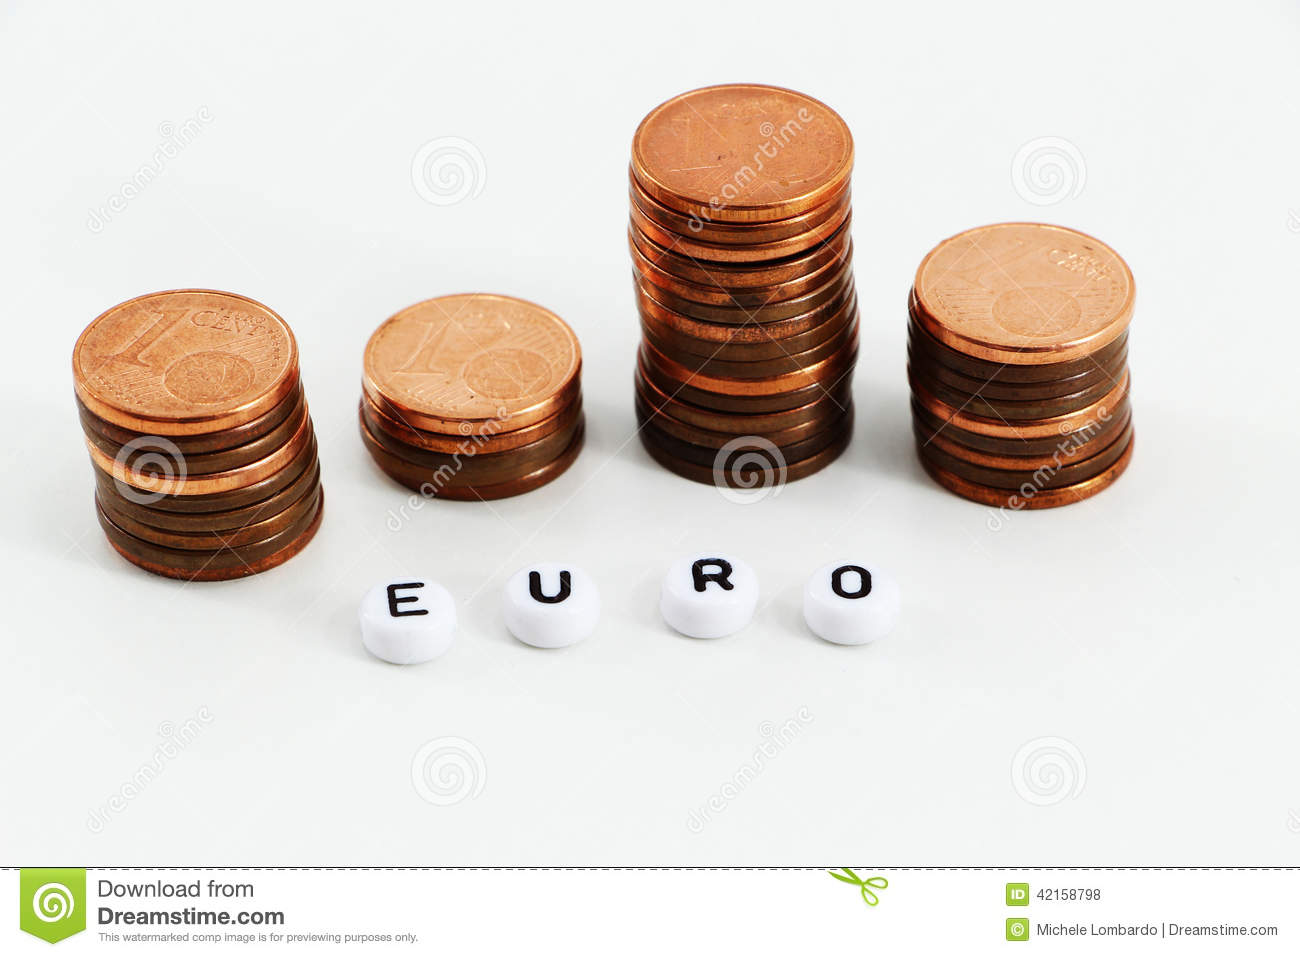 Concept of money, staggered coins